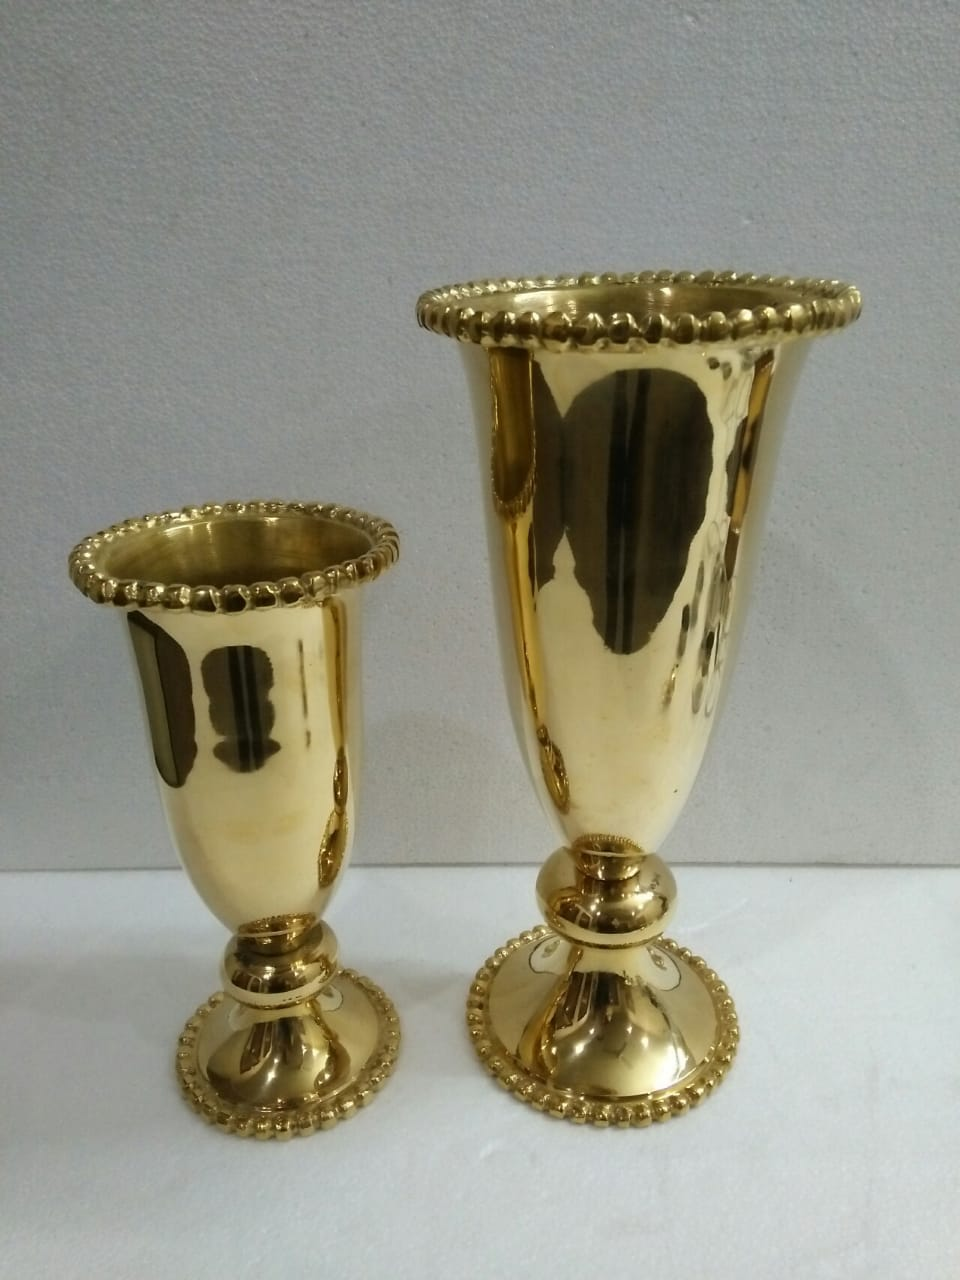 & High Polished Flower Vase \u2013 Sacristan Brass